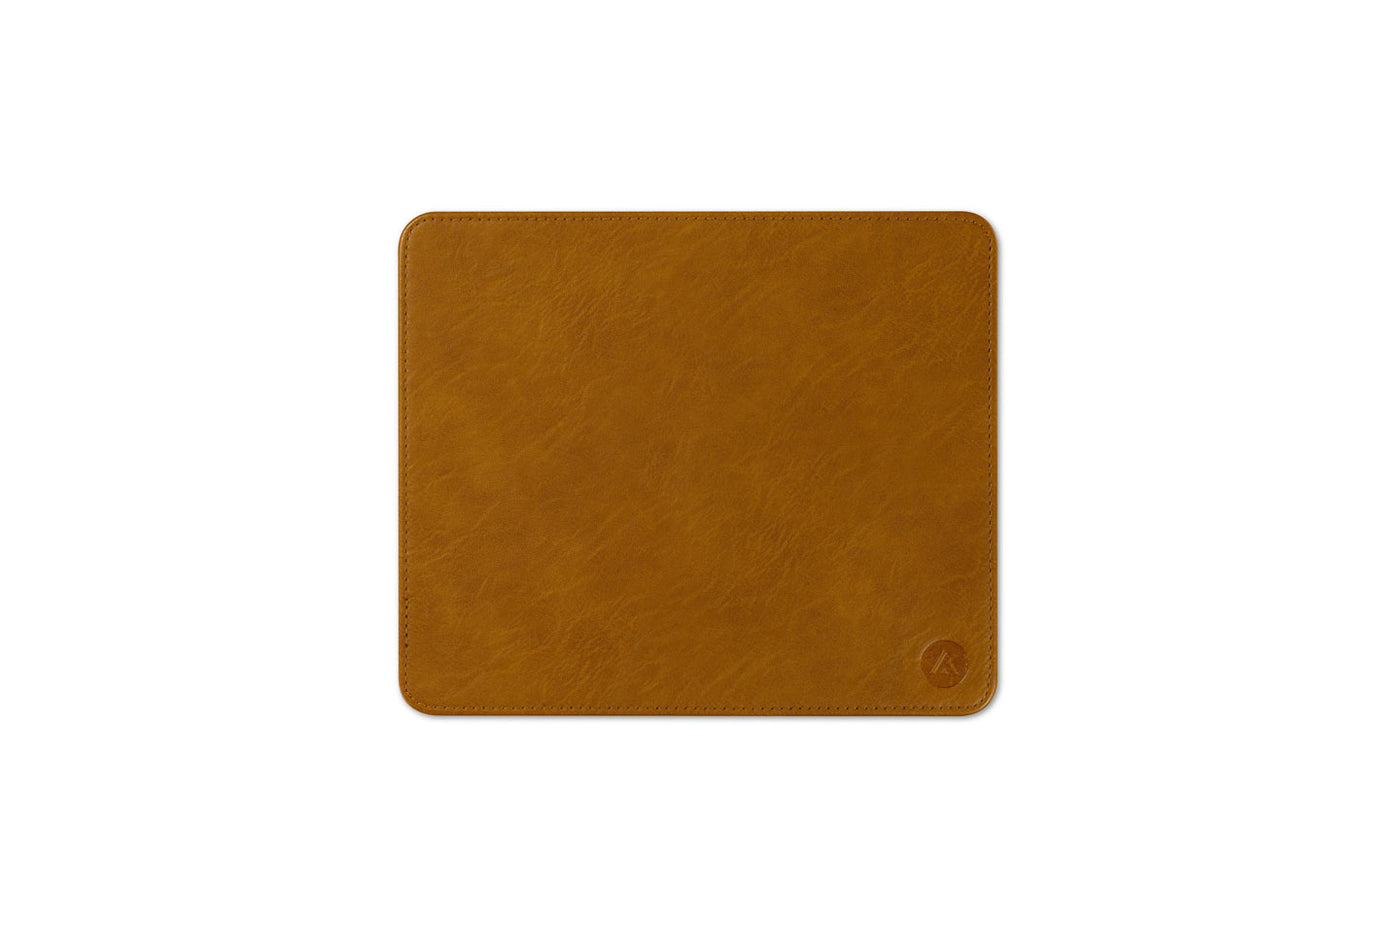 ASMBLD blue sky mousepad in faux brown leather, stitched mousepad